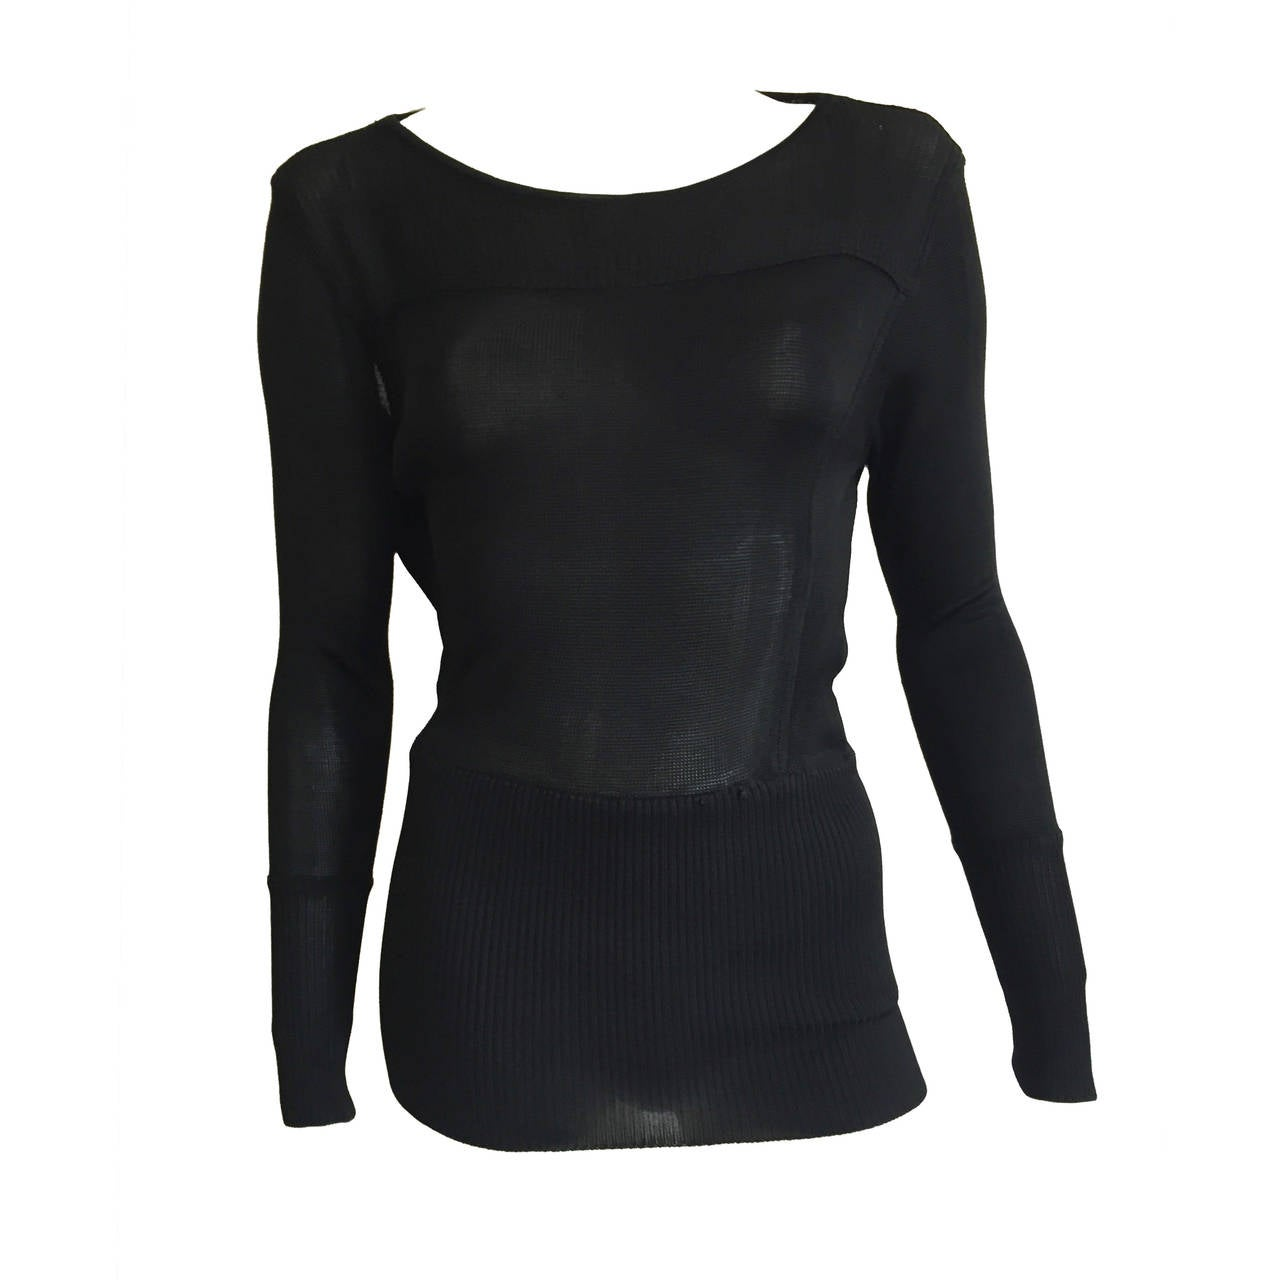 Claude Montana Black Knit Top Size 4 / 6.